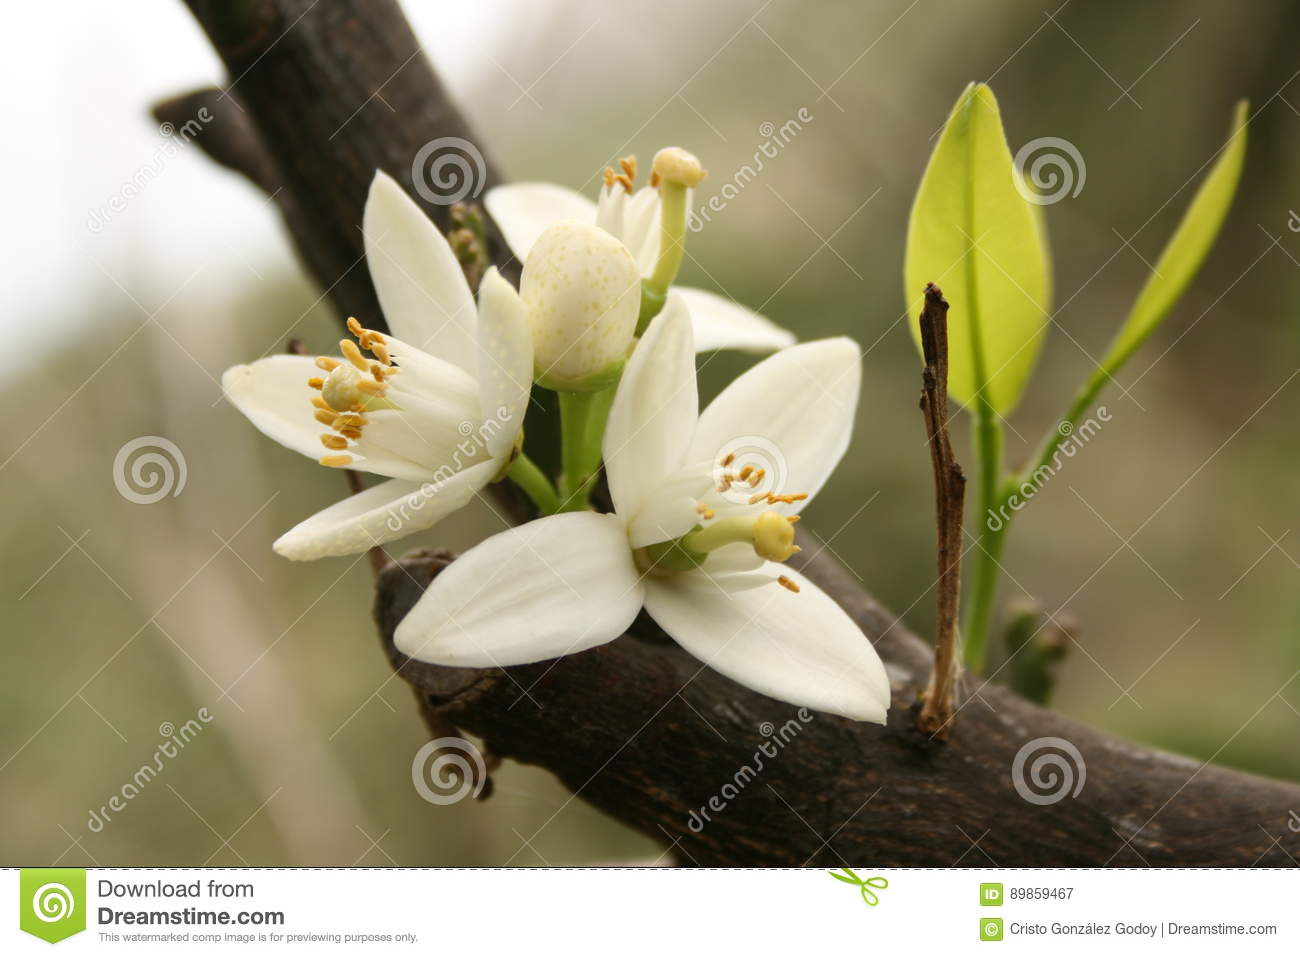 Flower of an orange tree stock image image of flowering 89859467 flower of an orange tree the flower is white and is flowering is also stuck to the trunk of the tree you can see petals anther and detailed filaments mightylinksfo